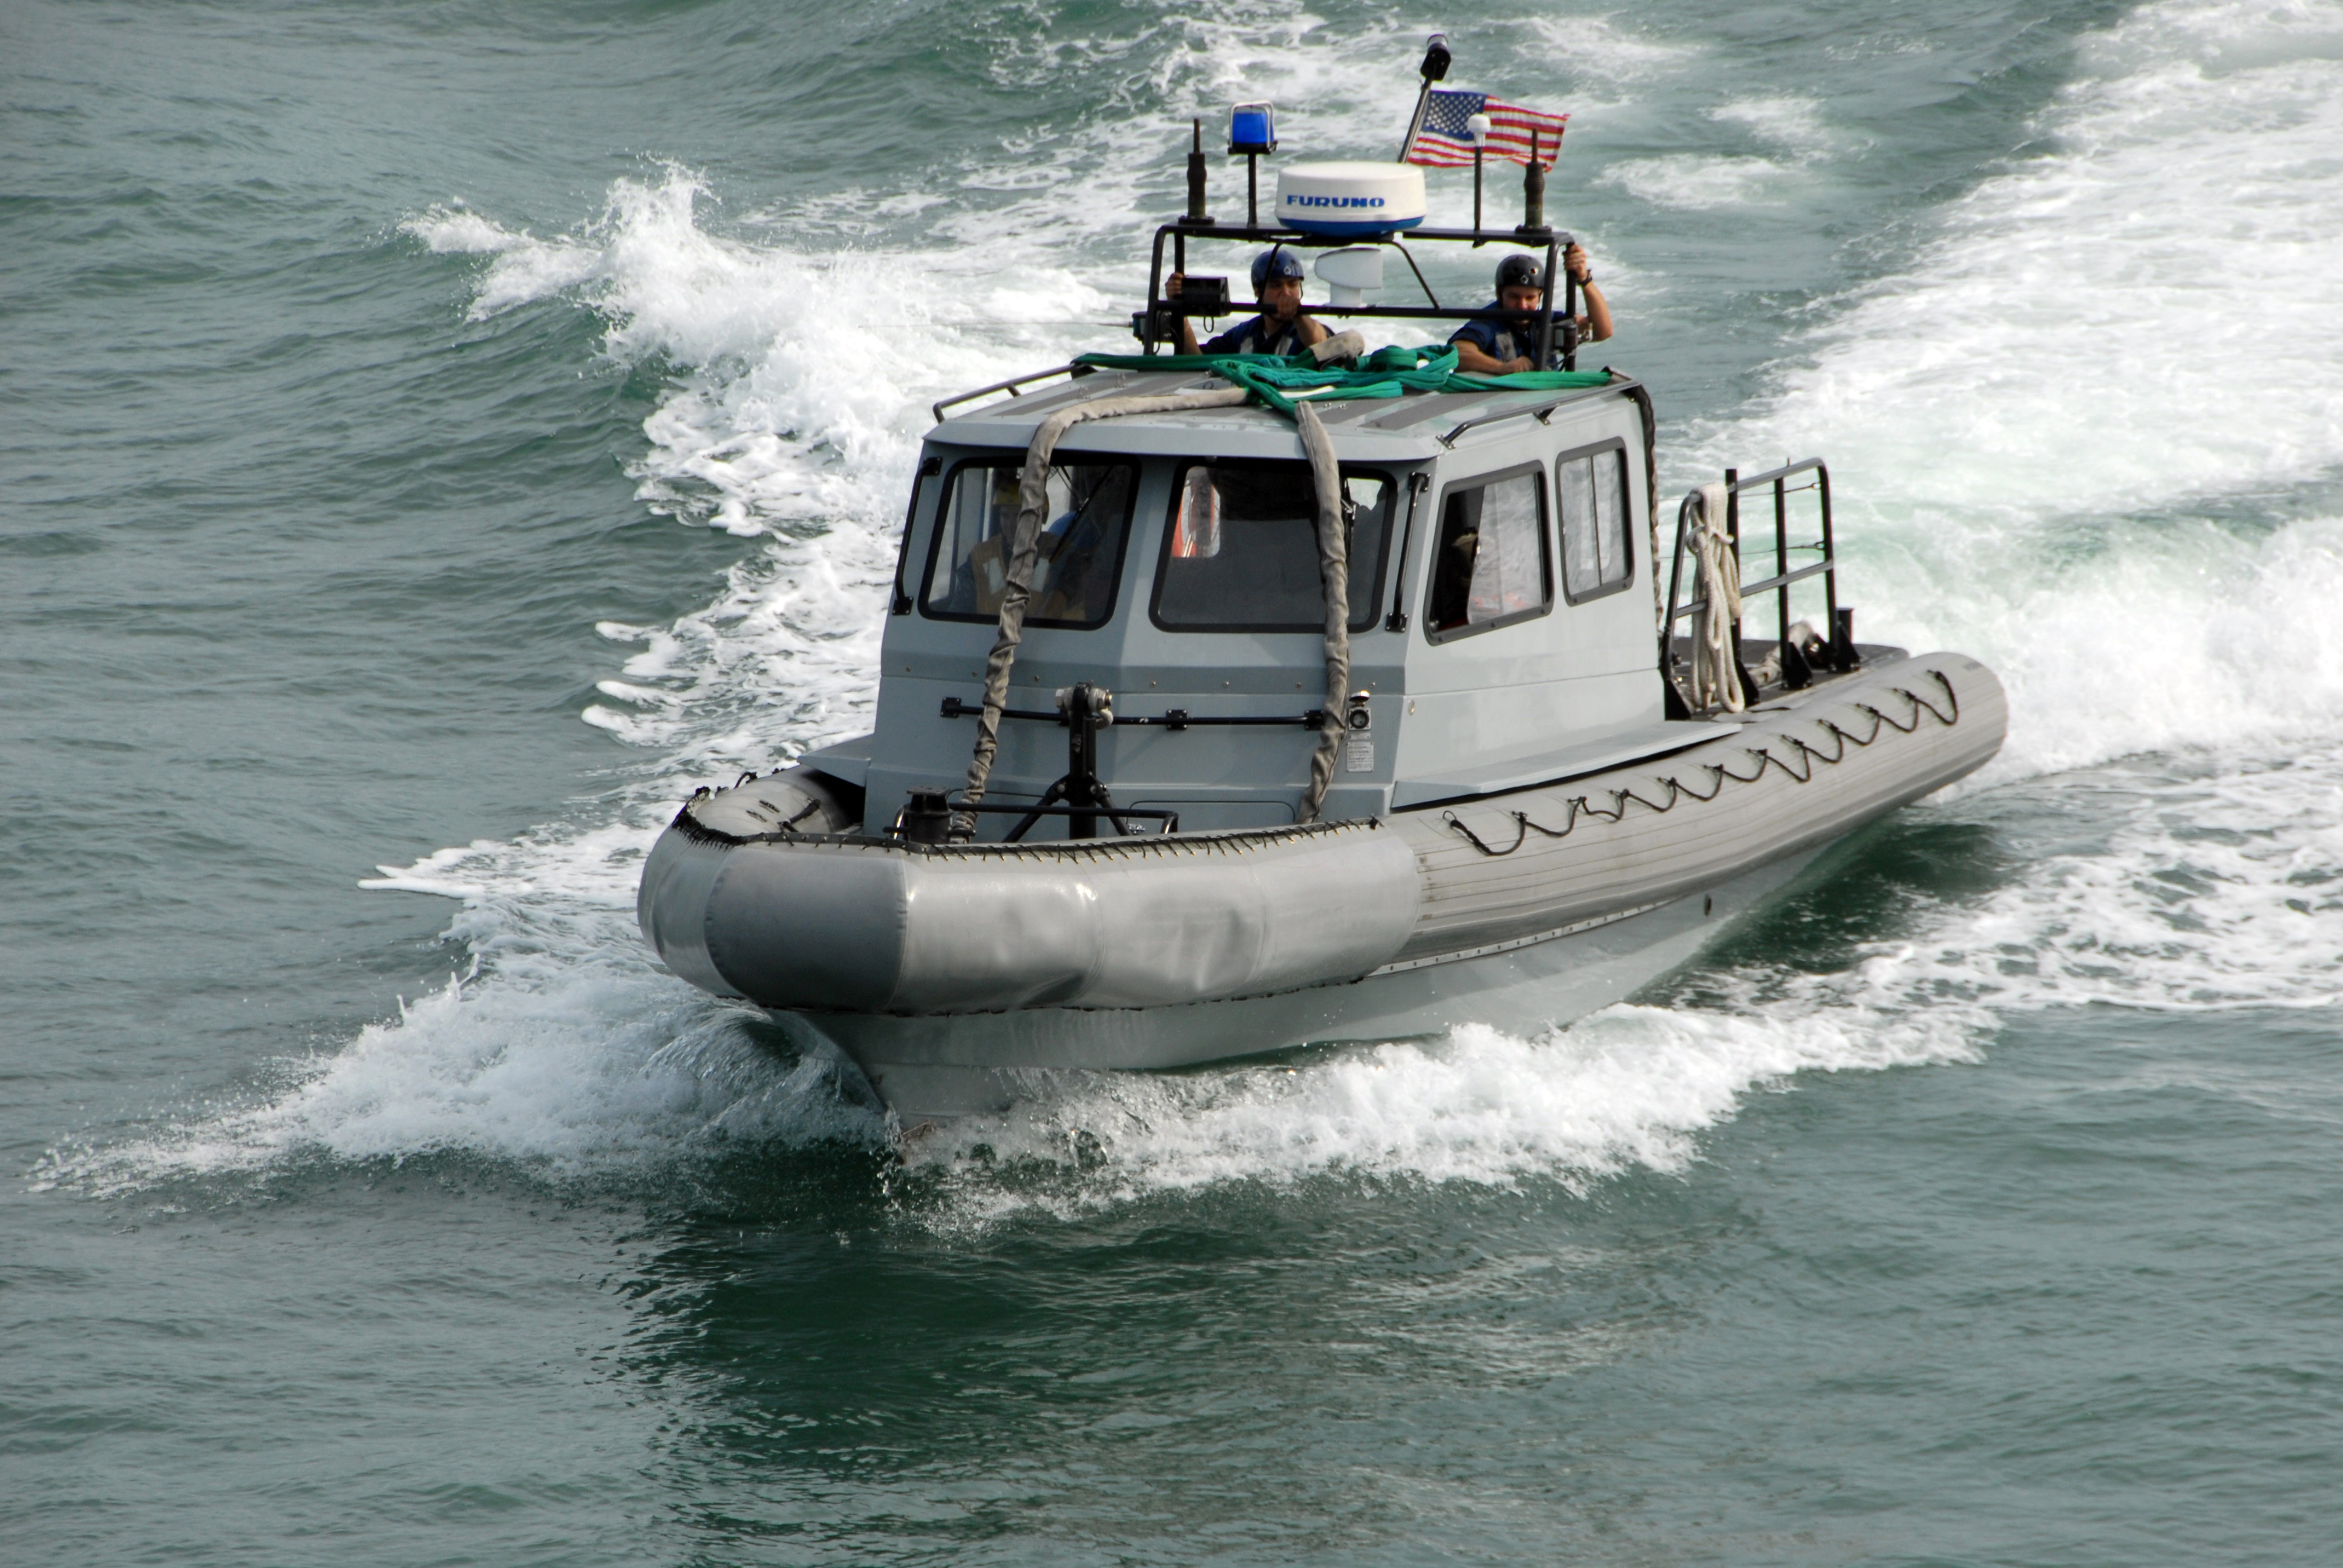 Pin Us-navy-rigid-hull-inflatable-boat on Pinterest